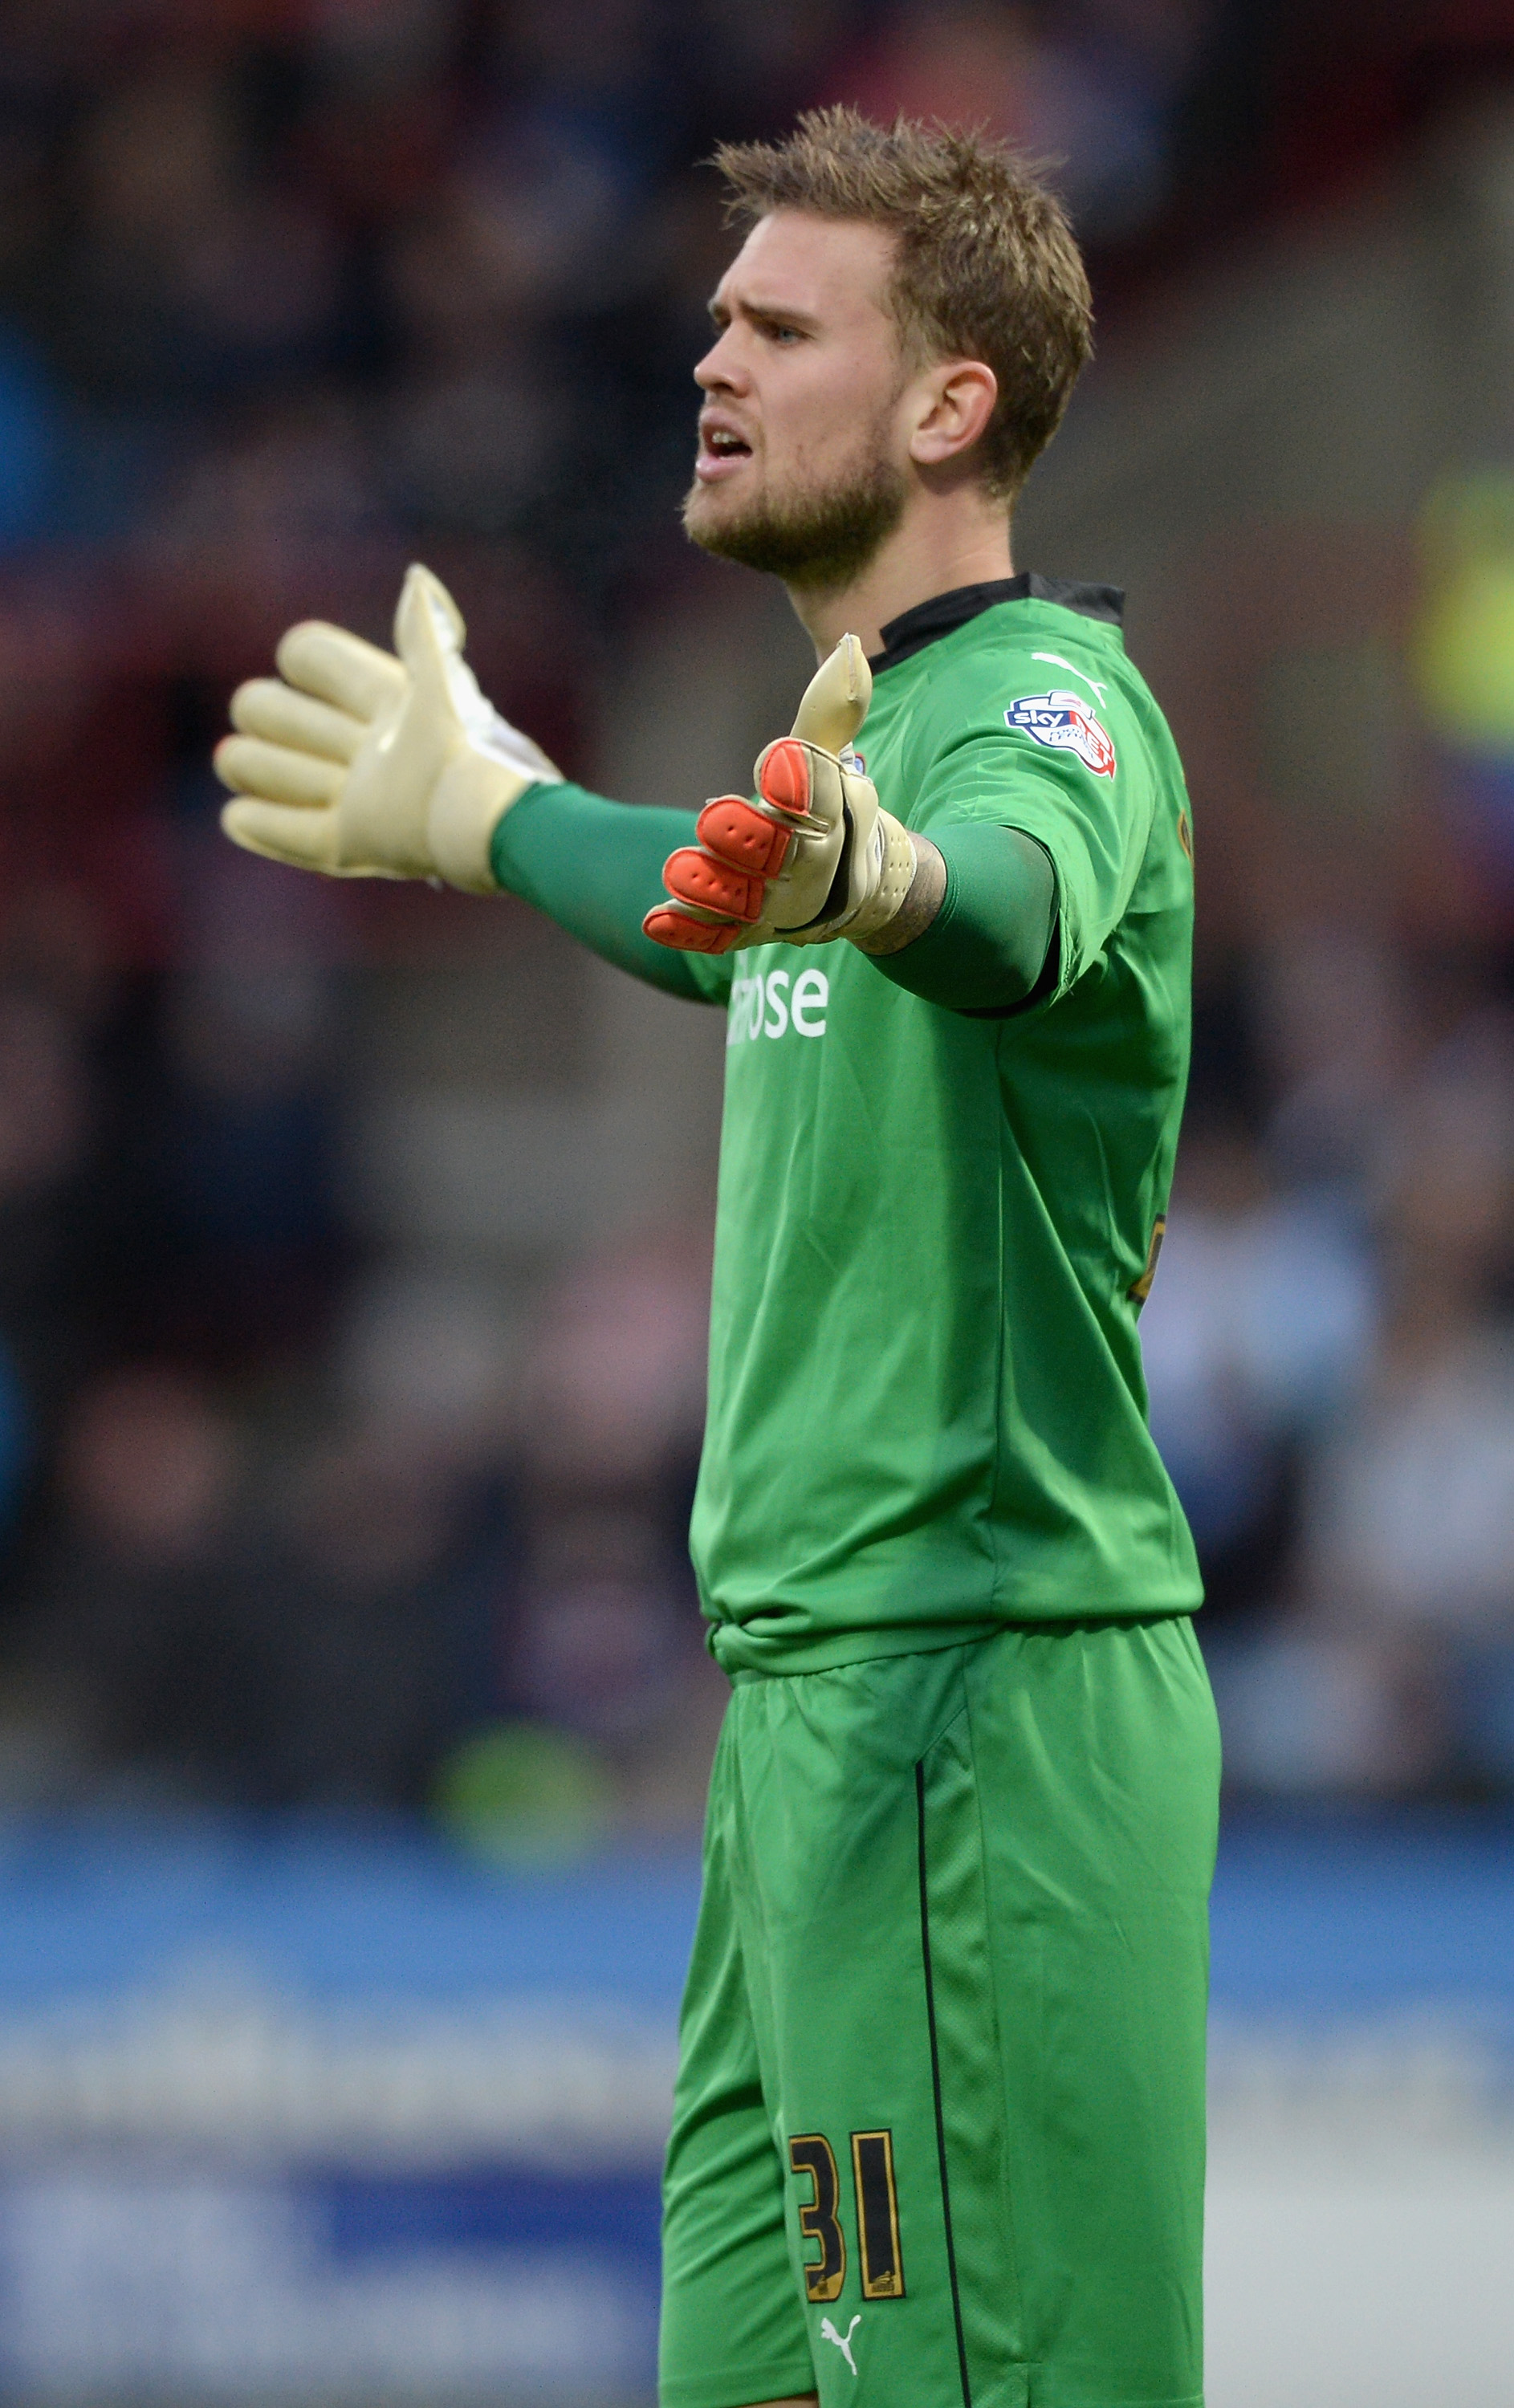 Huddersfield Town v Reading - FA Cup Third Round